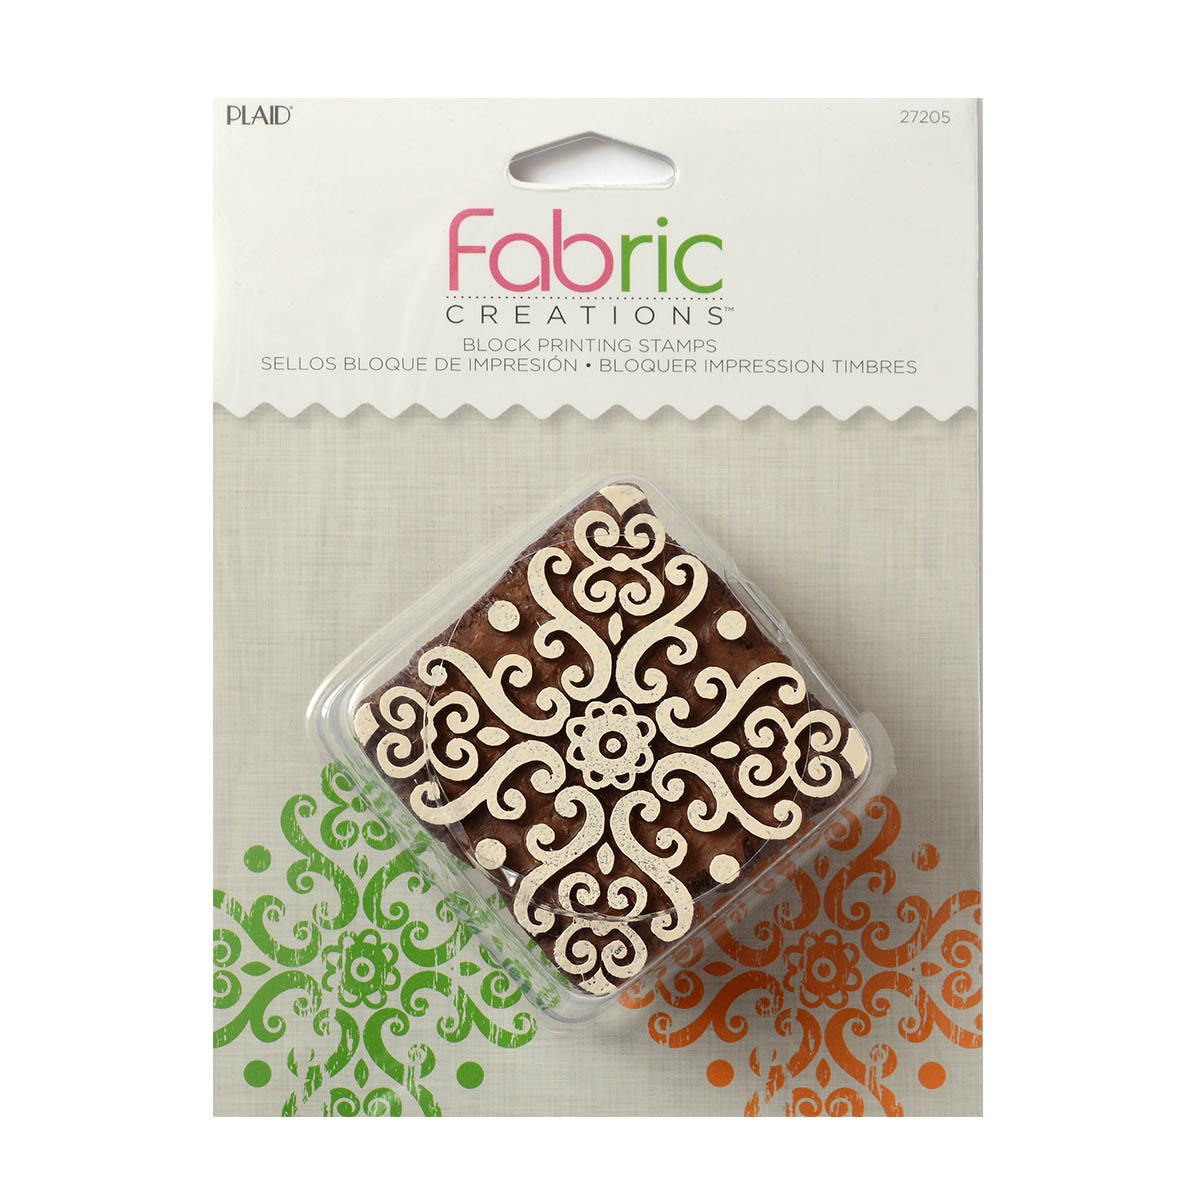 Fabric Creations™ Block Printing Stamps - Medium - Baroque Medallion - 27205